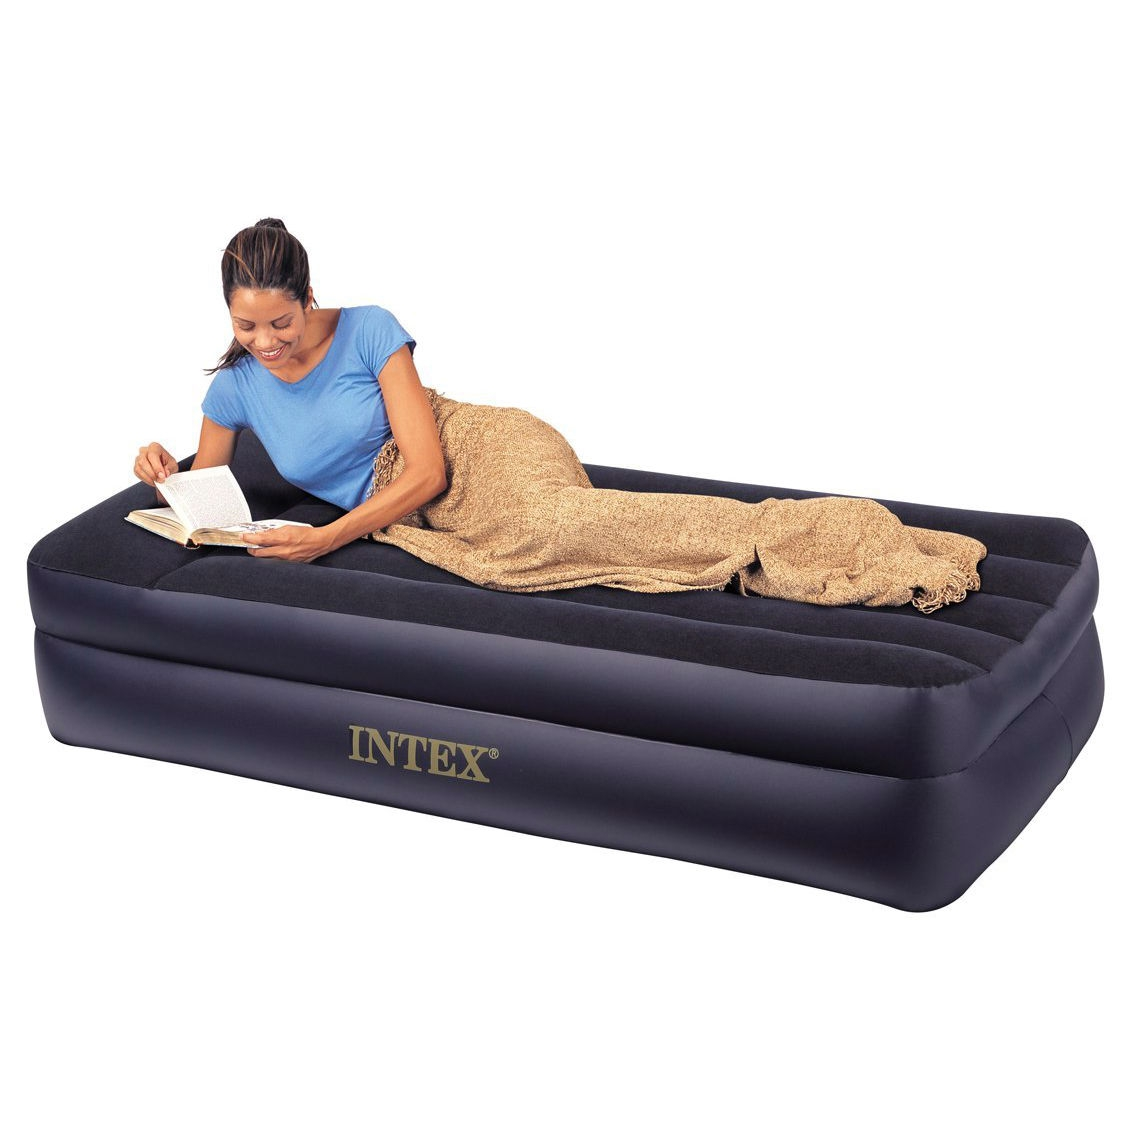 Twin Pillow Rest Raised Air Mattress With Built In Air Bed Pump